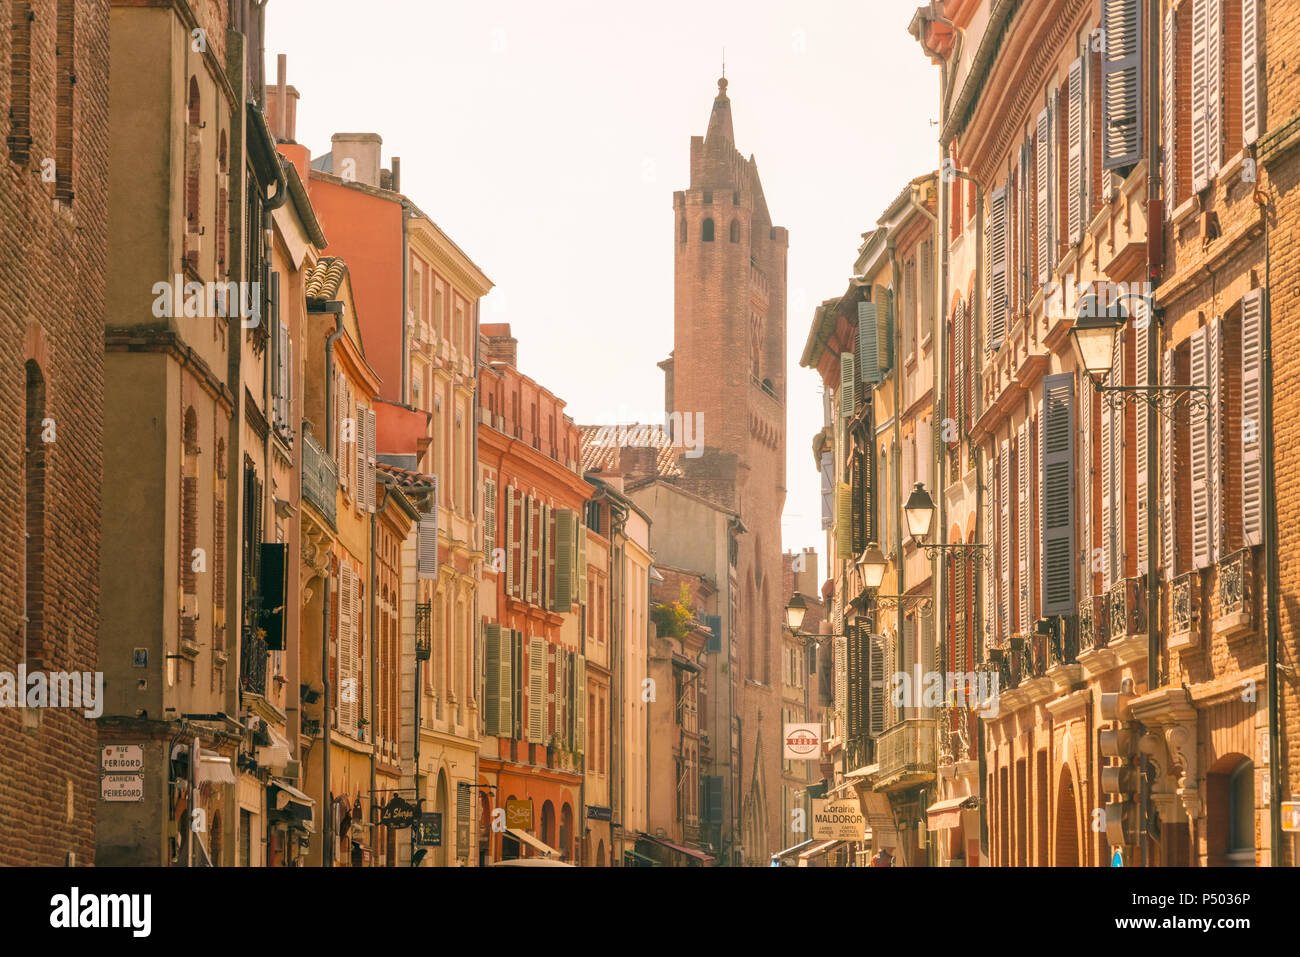 France, Haute-Garonne, Toulouse, Old town, old houses and Basilica of Saint Sernin - Stock Image